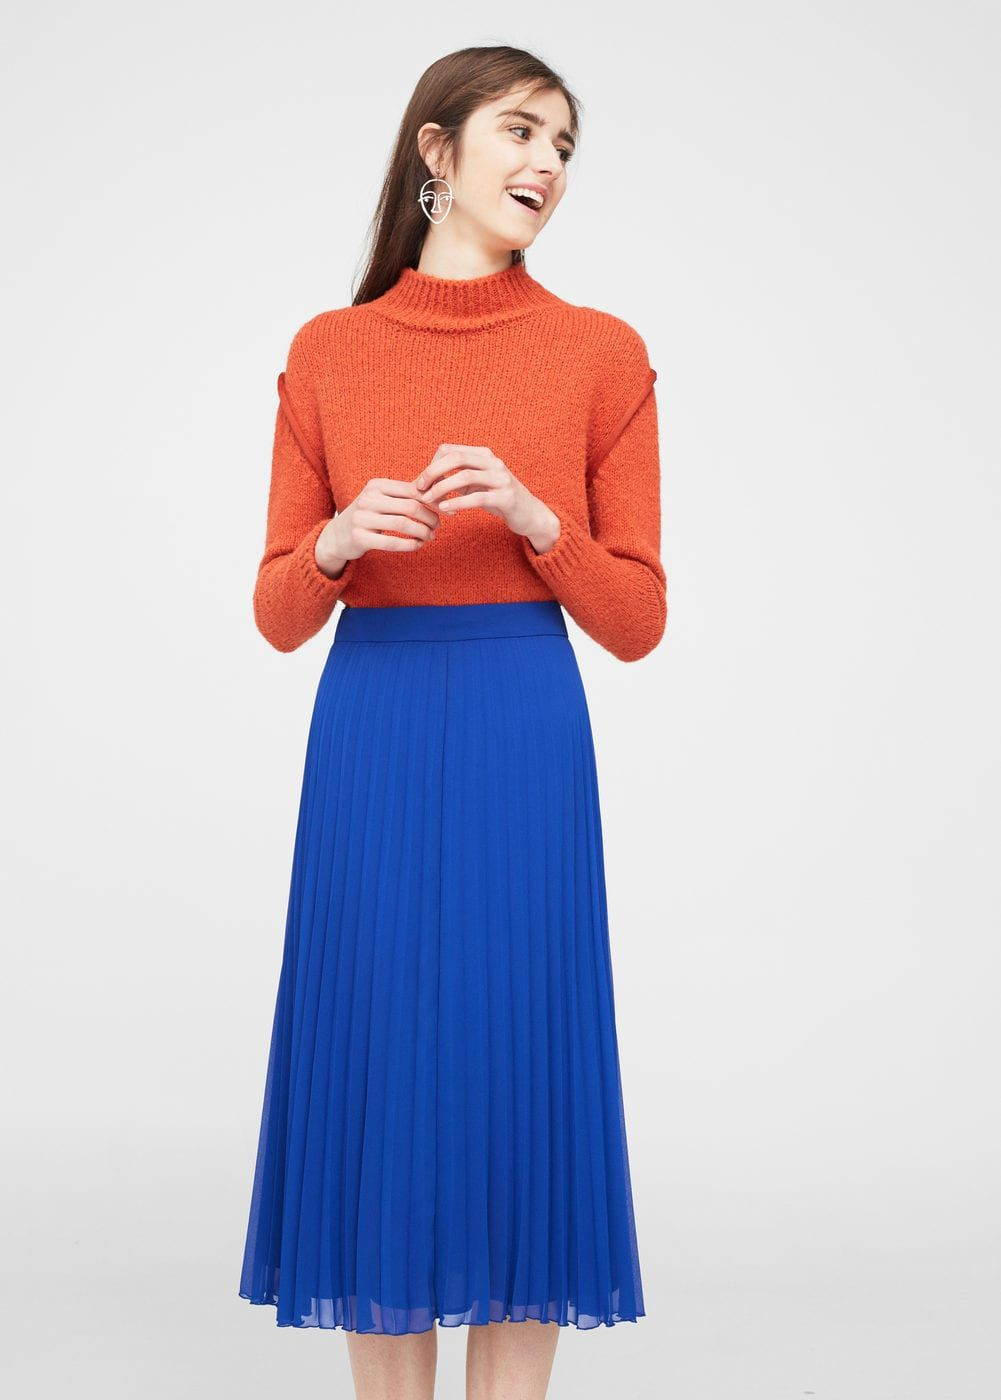 Simple, classy way to dress up your Mets colors! This look from MANGO incorporates the pleated skirt and mock turtleneck trends of this year, and the details shine with the simple orange and blue color blocking.